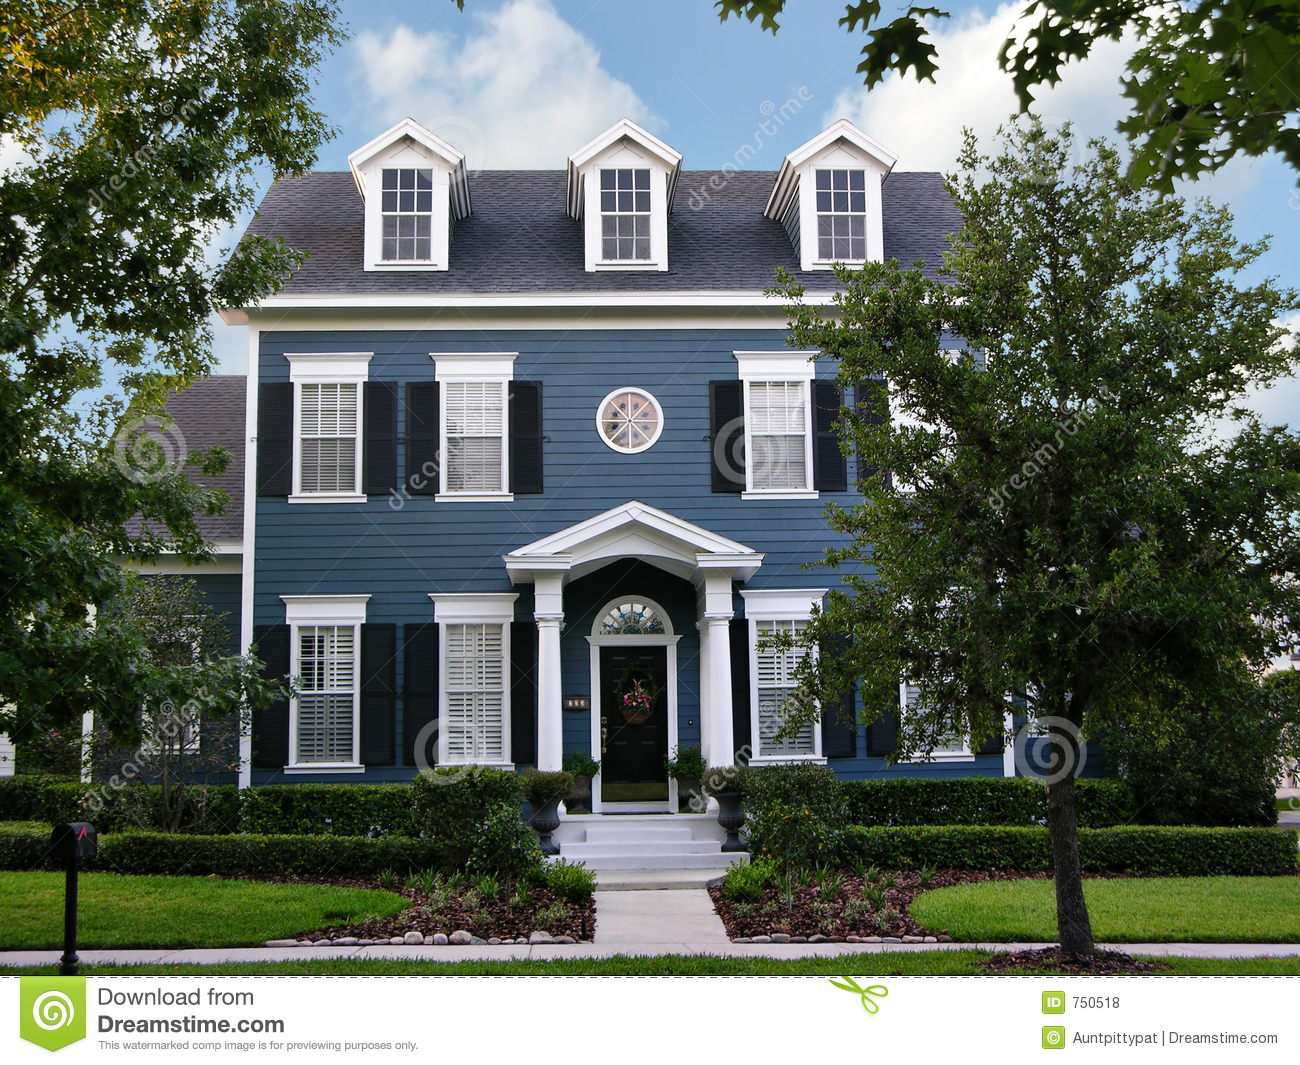 Two-Story Colonial Royalty Free Stock Photos - Image: 750518